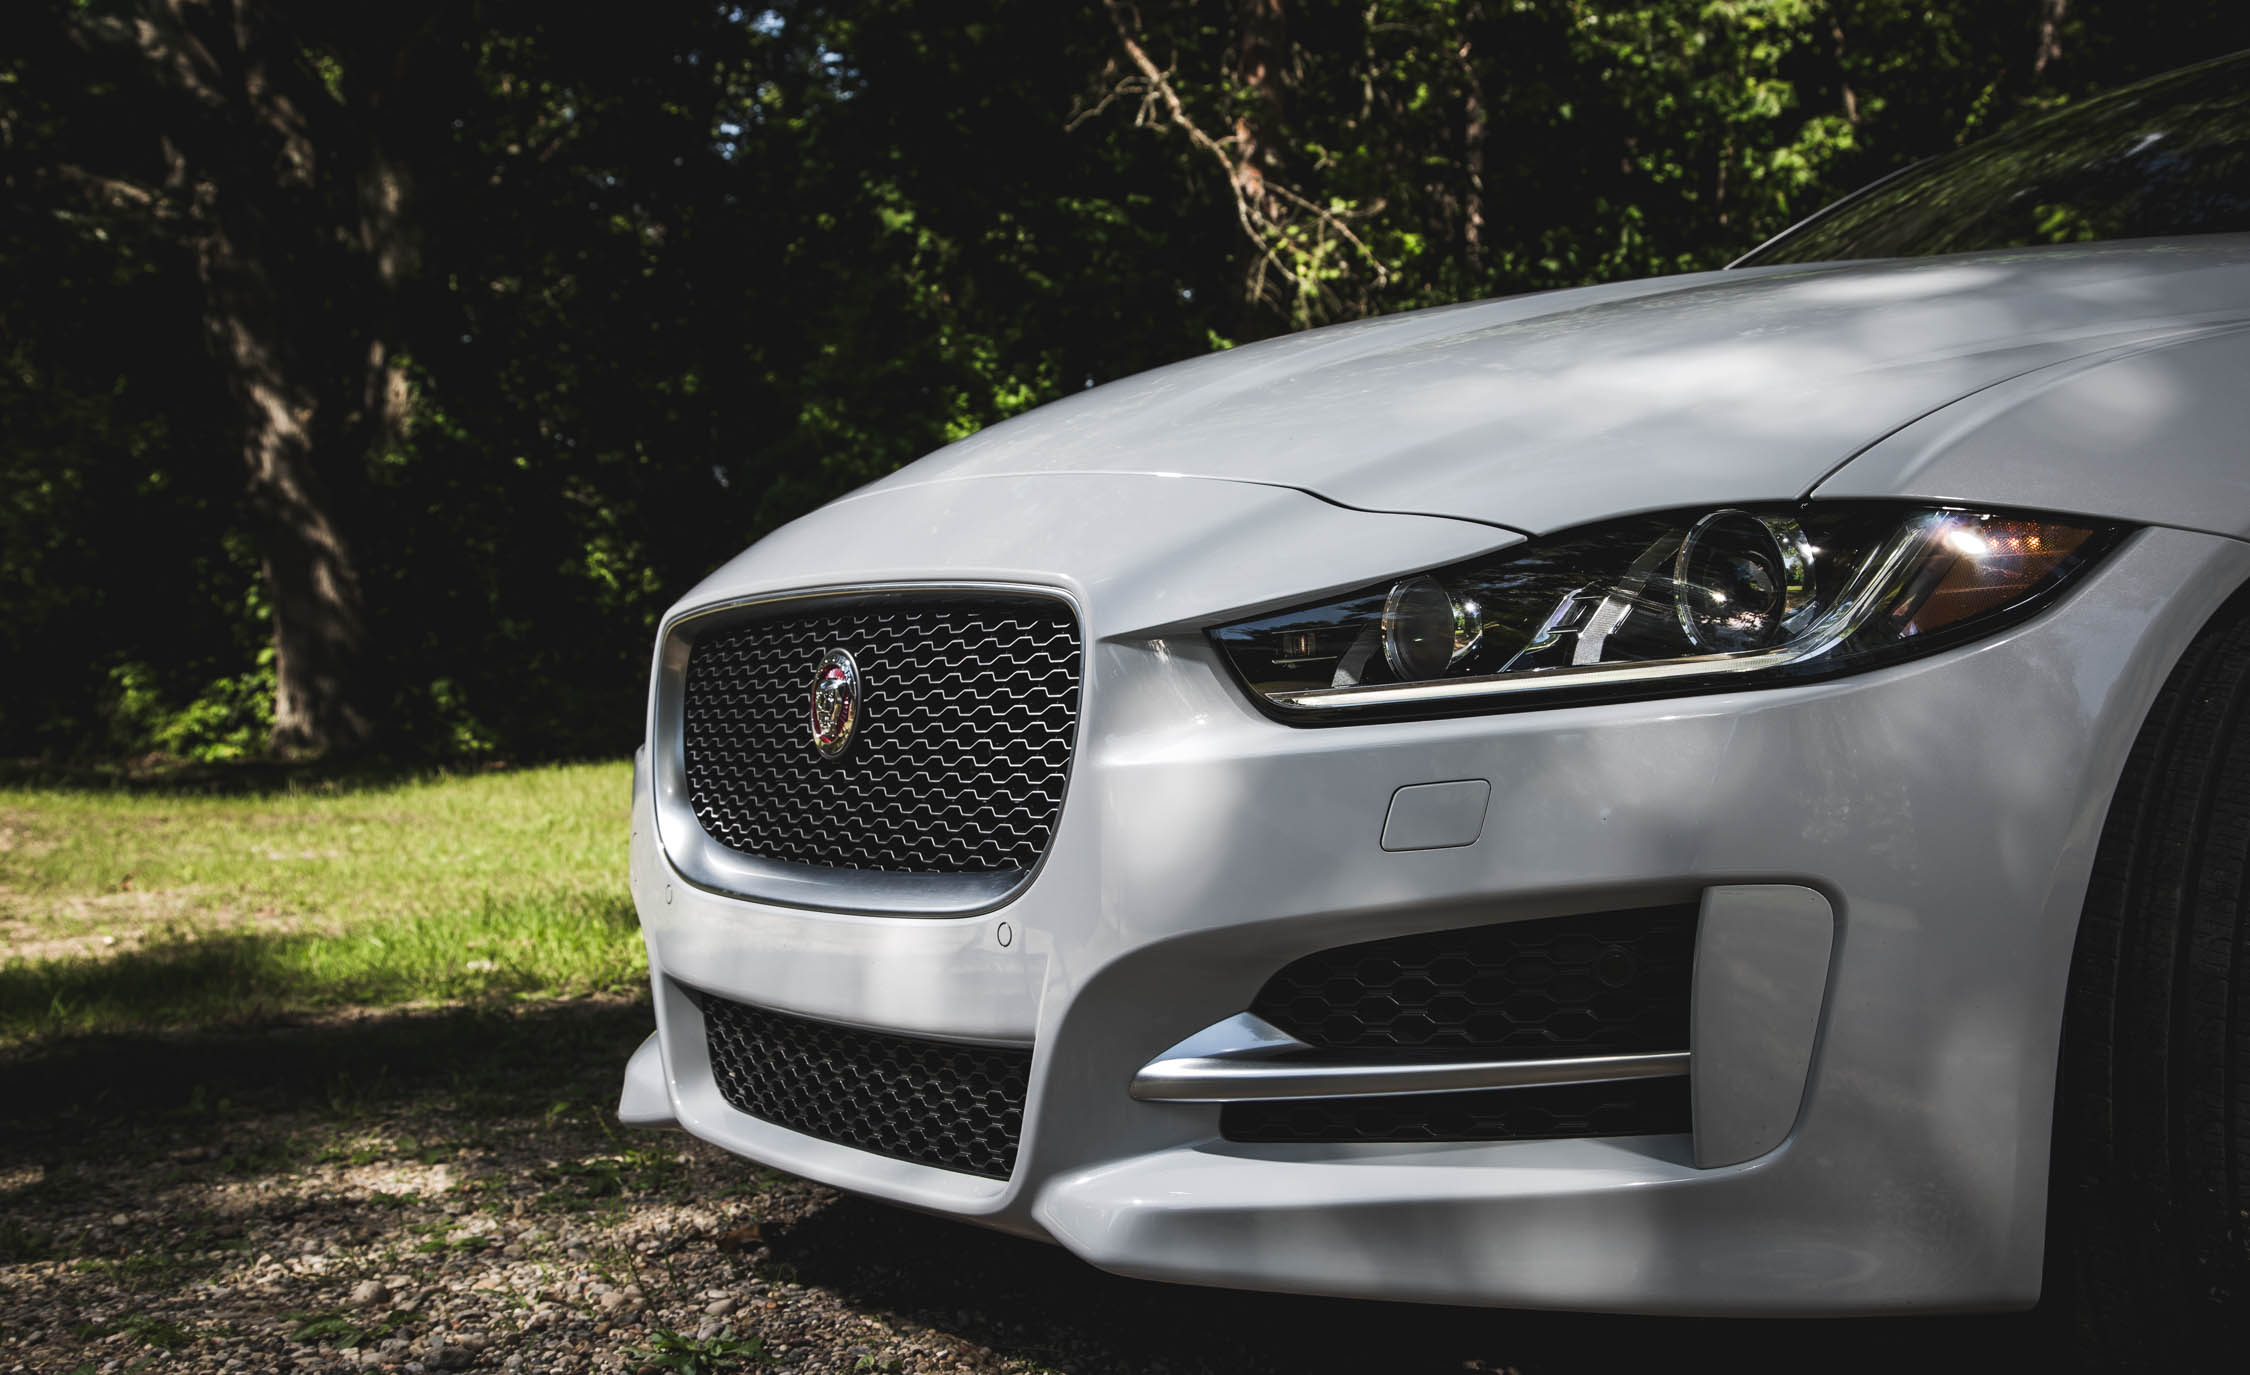 2017 Jaguar Xe White Exterior View Grille And Bumper (Photo 26 of 32)